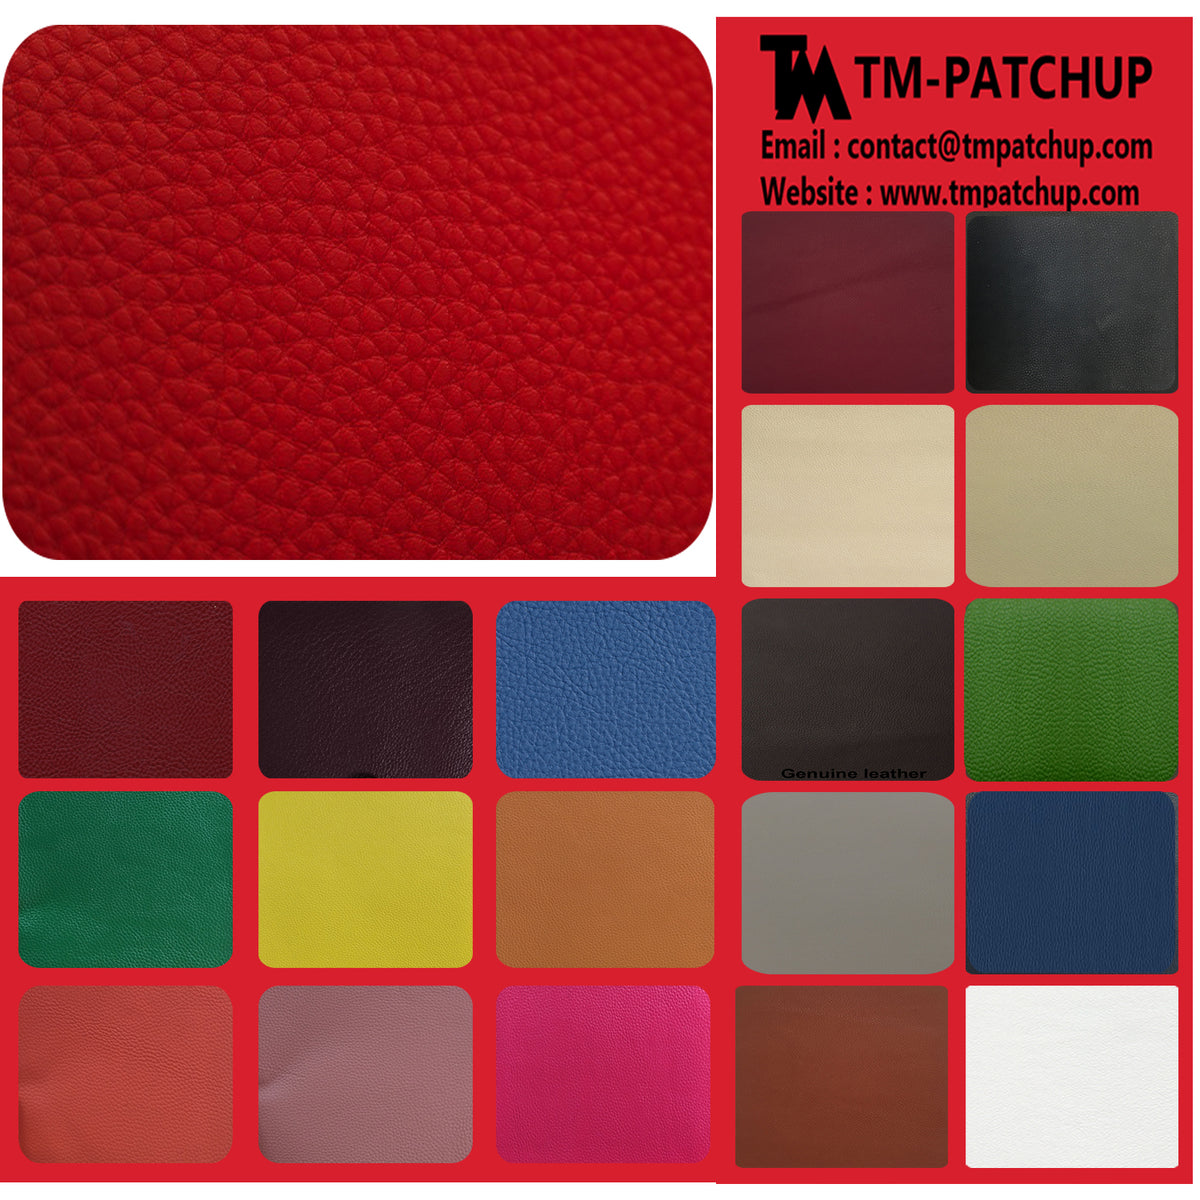 Red Genuine Leather Repair Patch Kit | Free KN95 Face Masks - TM Leather